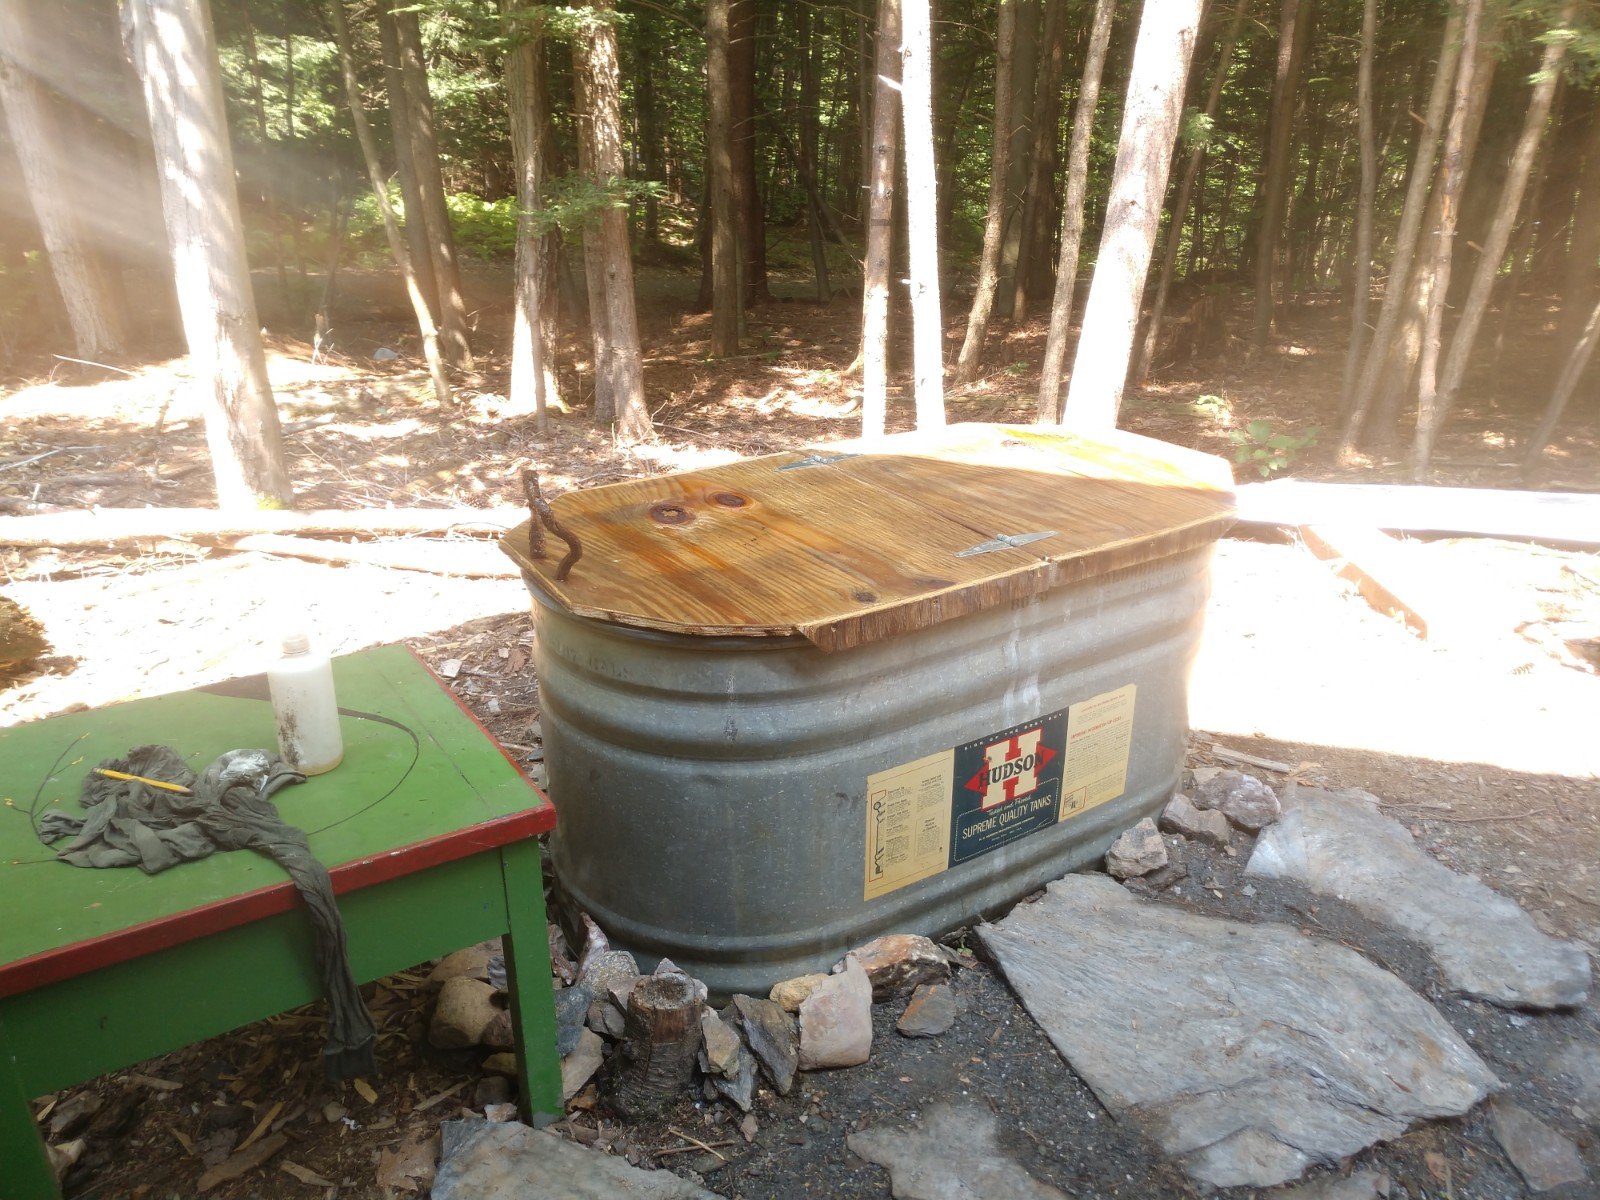 Gearing Up For Autumn Outdoor Programming And Doing Little Projects On The VT Homestead